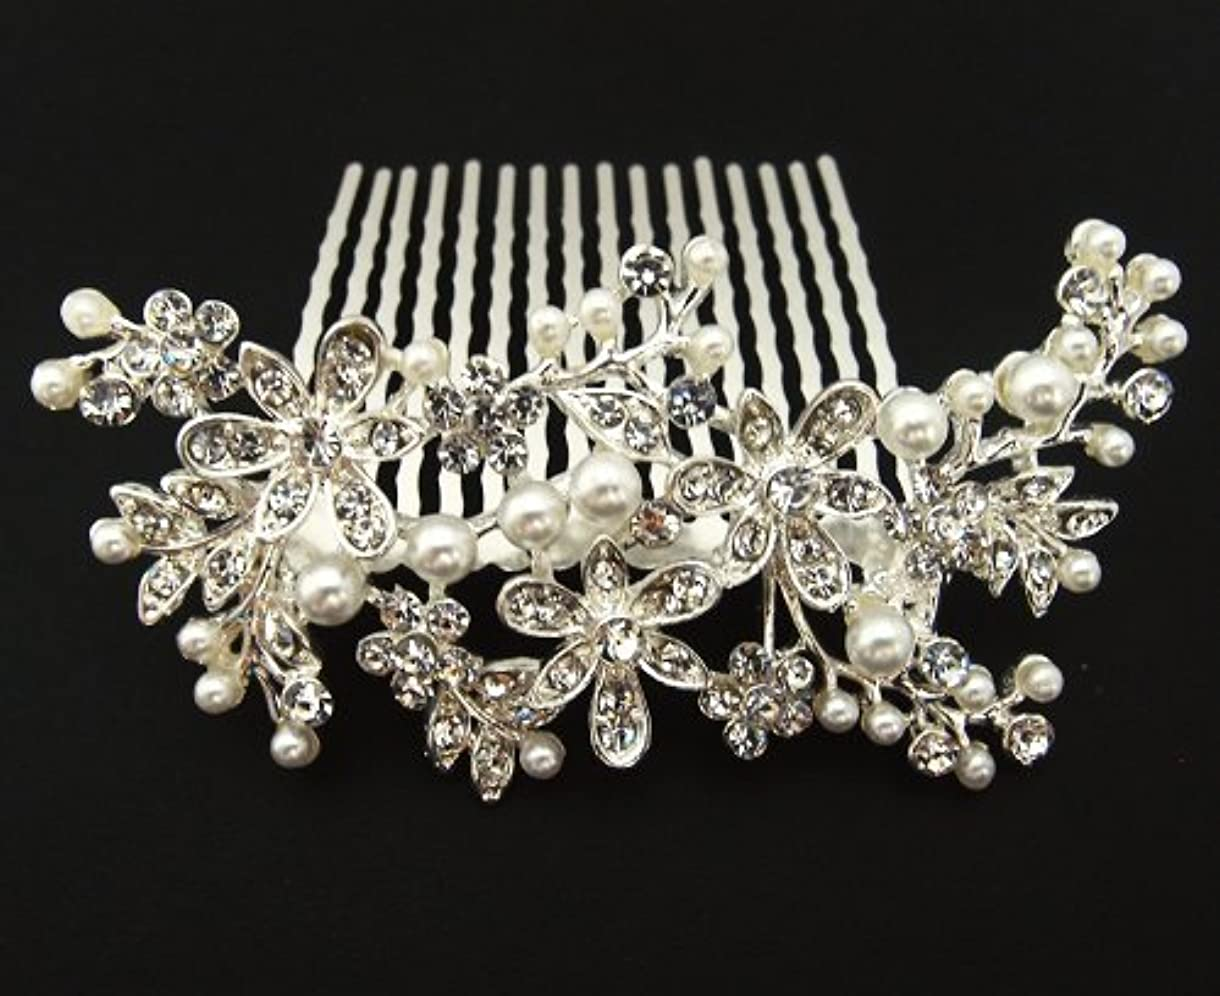 あらゆる種類の貸す柔和beautiful white Silver Color bridal wedding hair comb pearl and crystal #5 [並行輸入品]